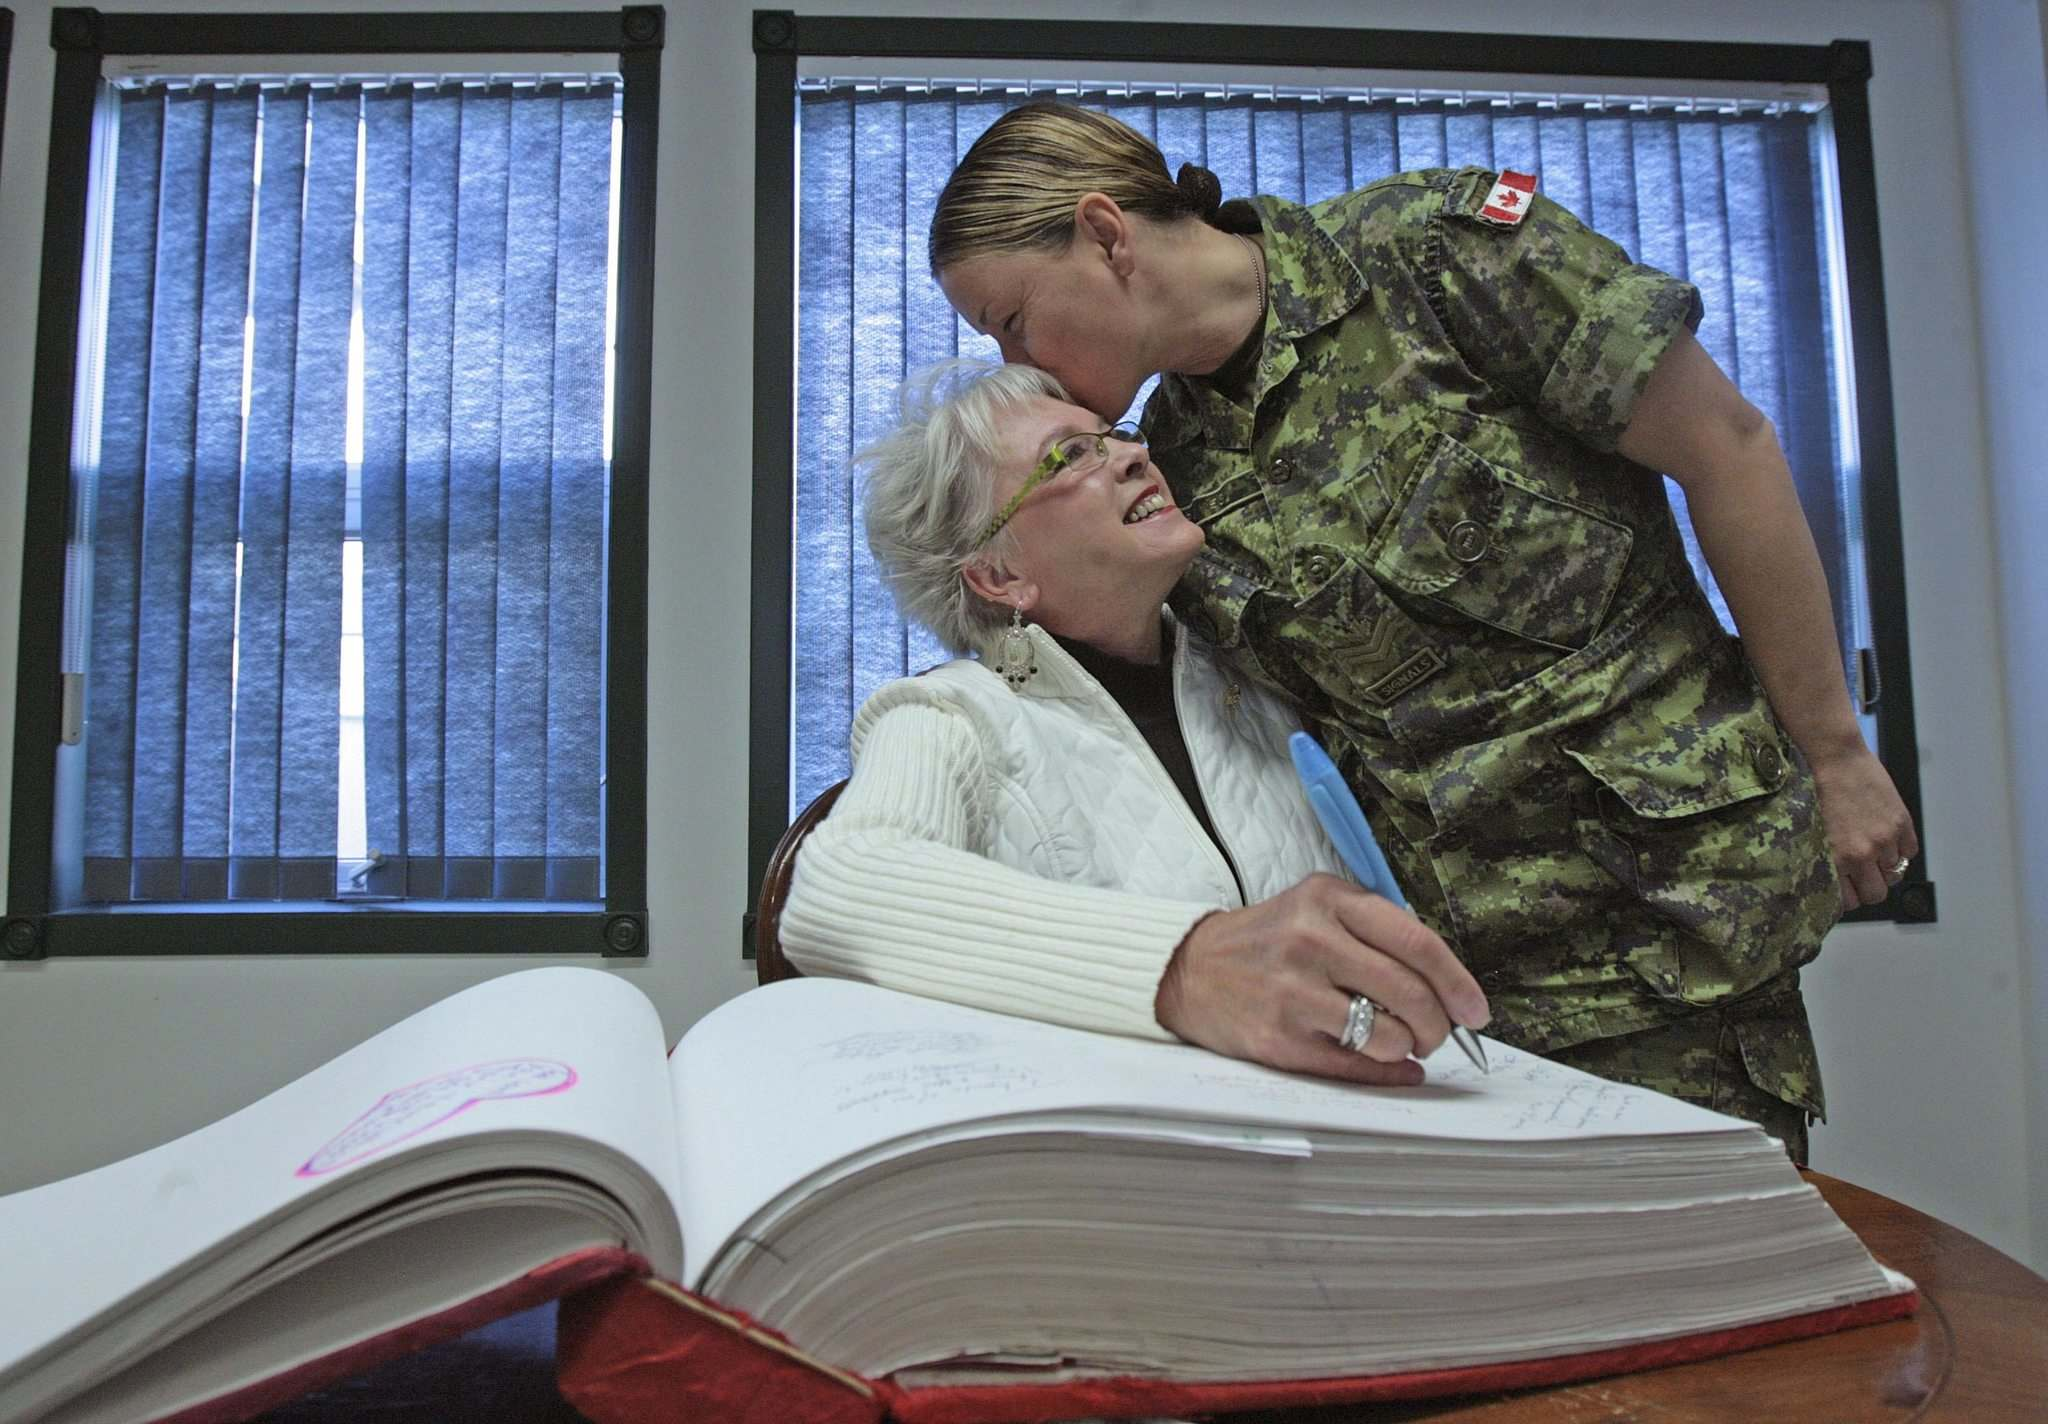 MLA Bonnie Korzeniowski gets a kiss from Master Corporal Renay Groves after she signed the National Memory Book at 17 Wing base in Winnipeg in 2007. (JOE BRYKSA/WINNIPEG FREE PRESS FILES)</p>